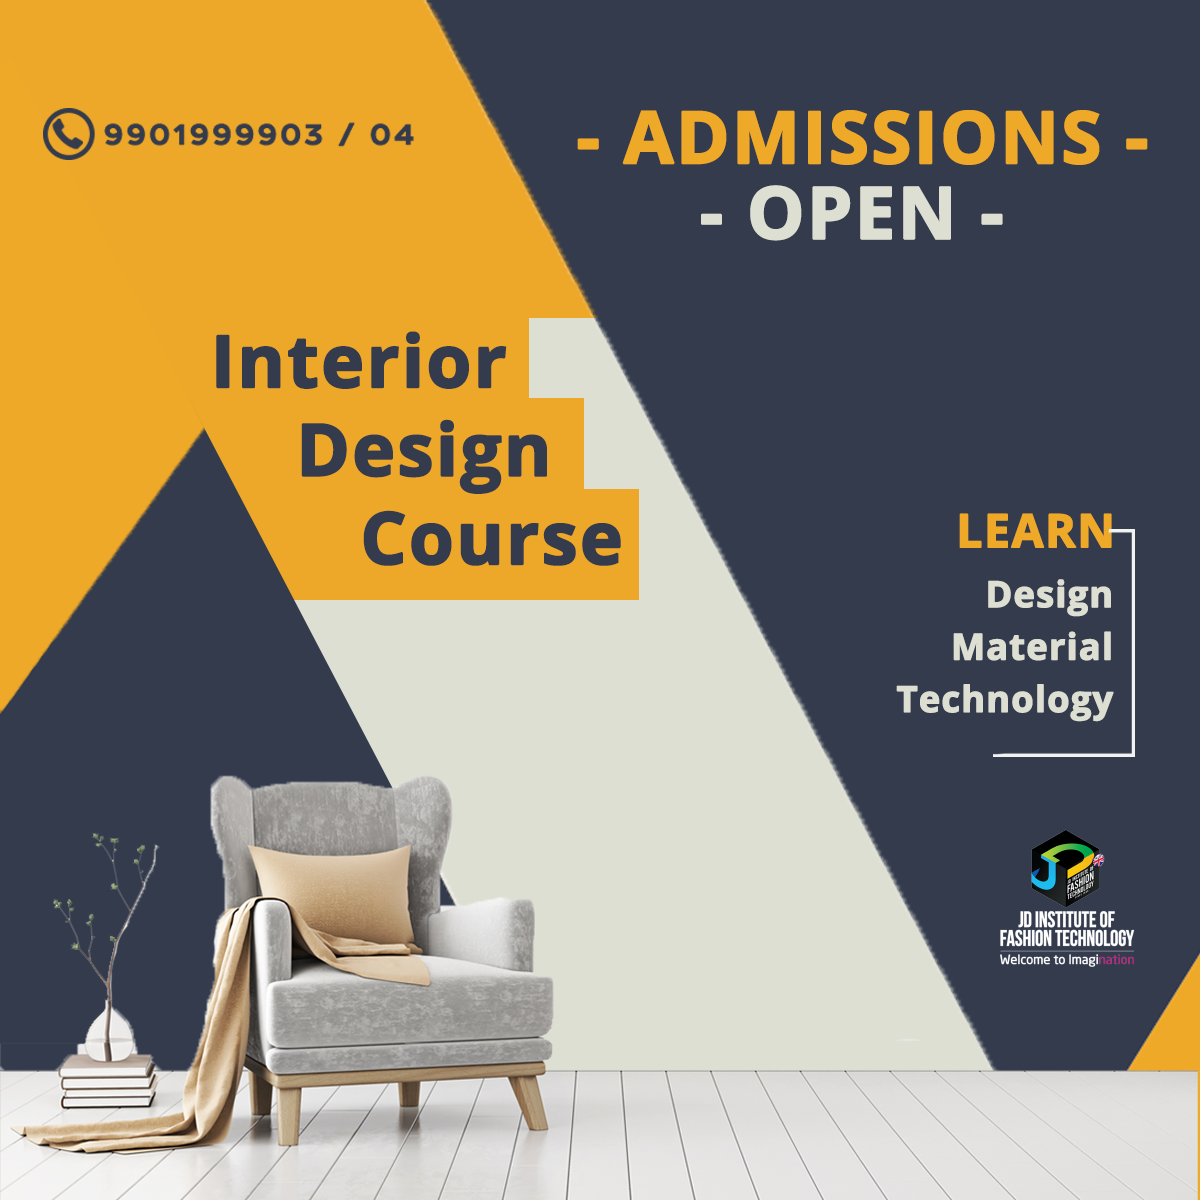 Degree And Diploma Course Admissions For Interior Design Is Open At Jd Institute Of Fa Interior Design Courses Interior Design Degree Interior Design Institute